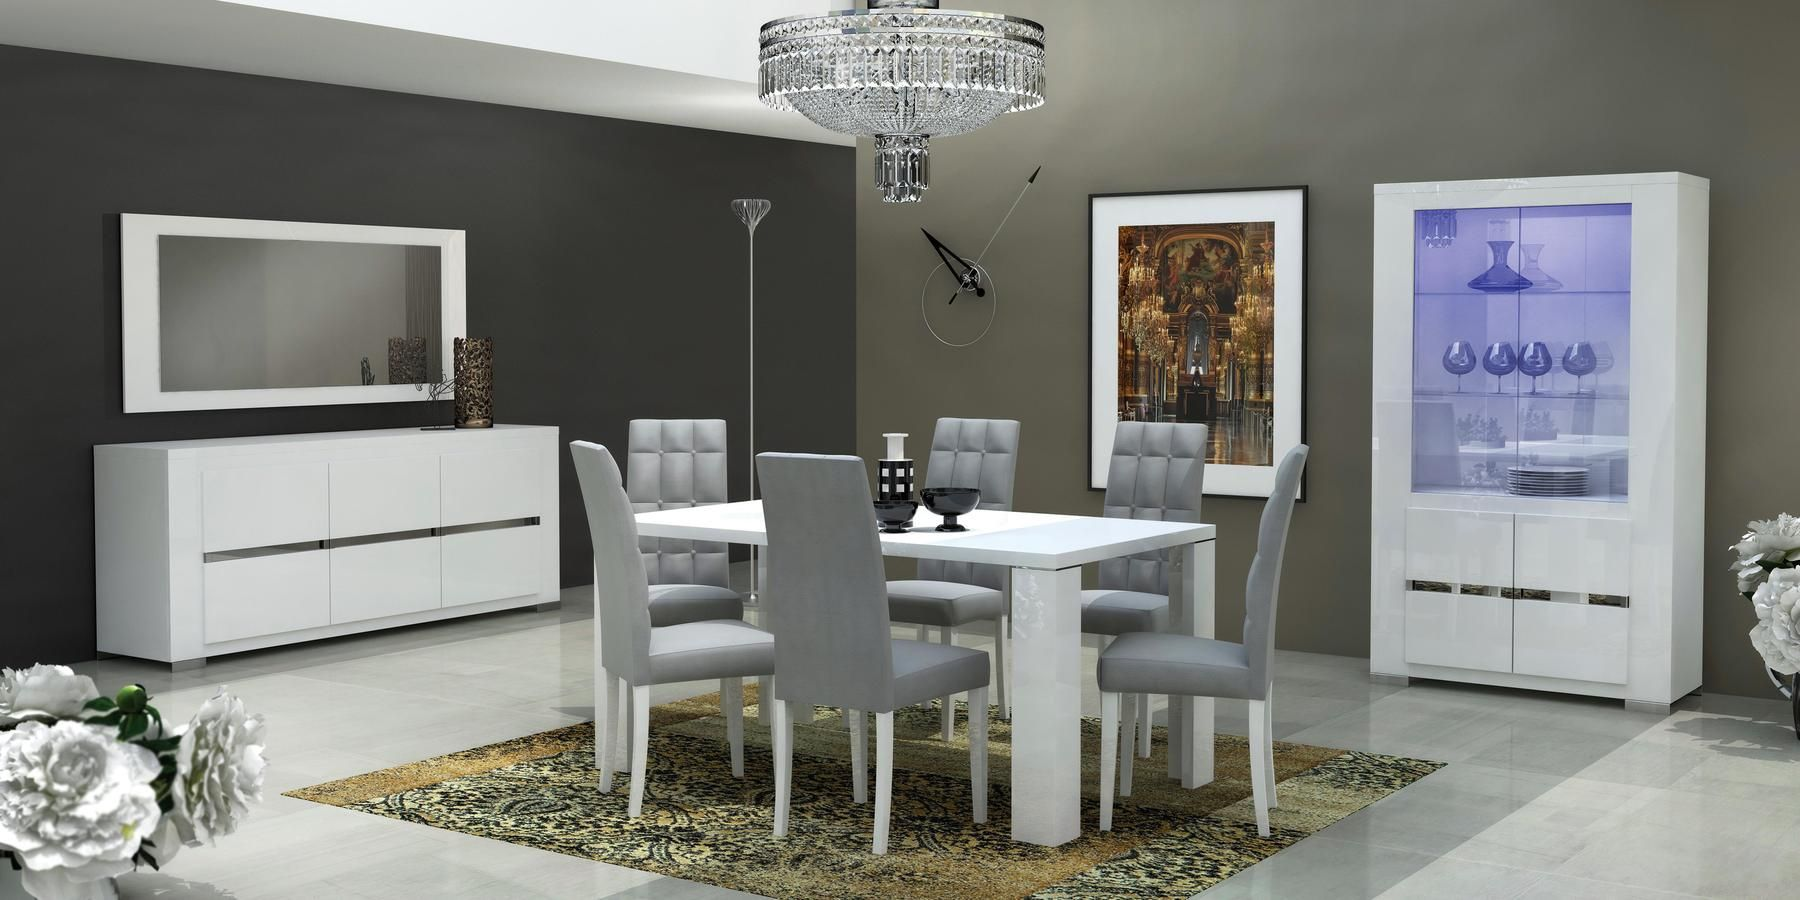 31+ Rimini dining table and chairs Best Choice